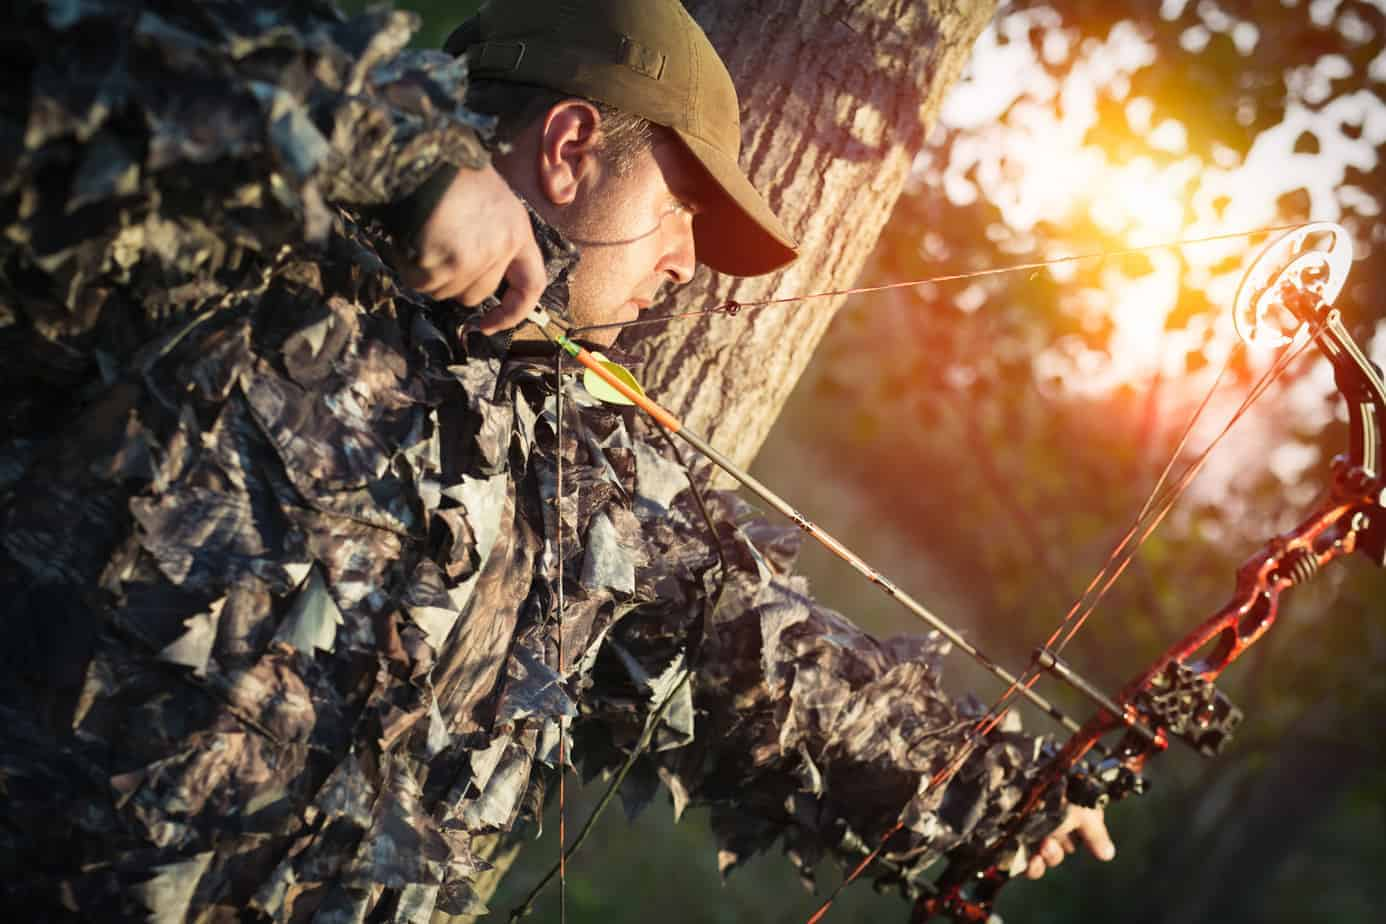 Man bow hunting in green camo